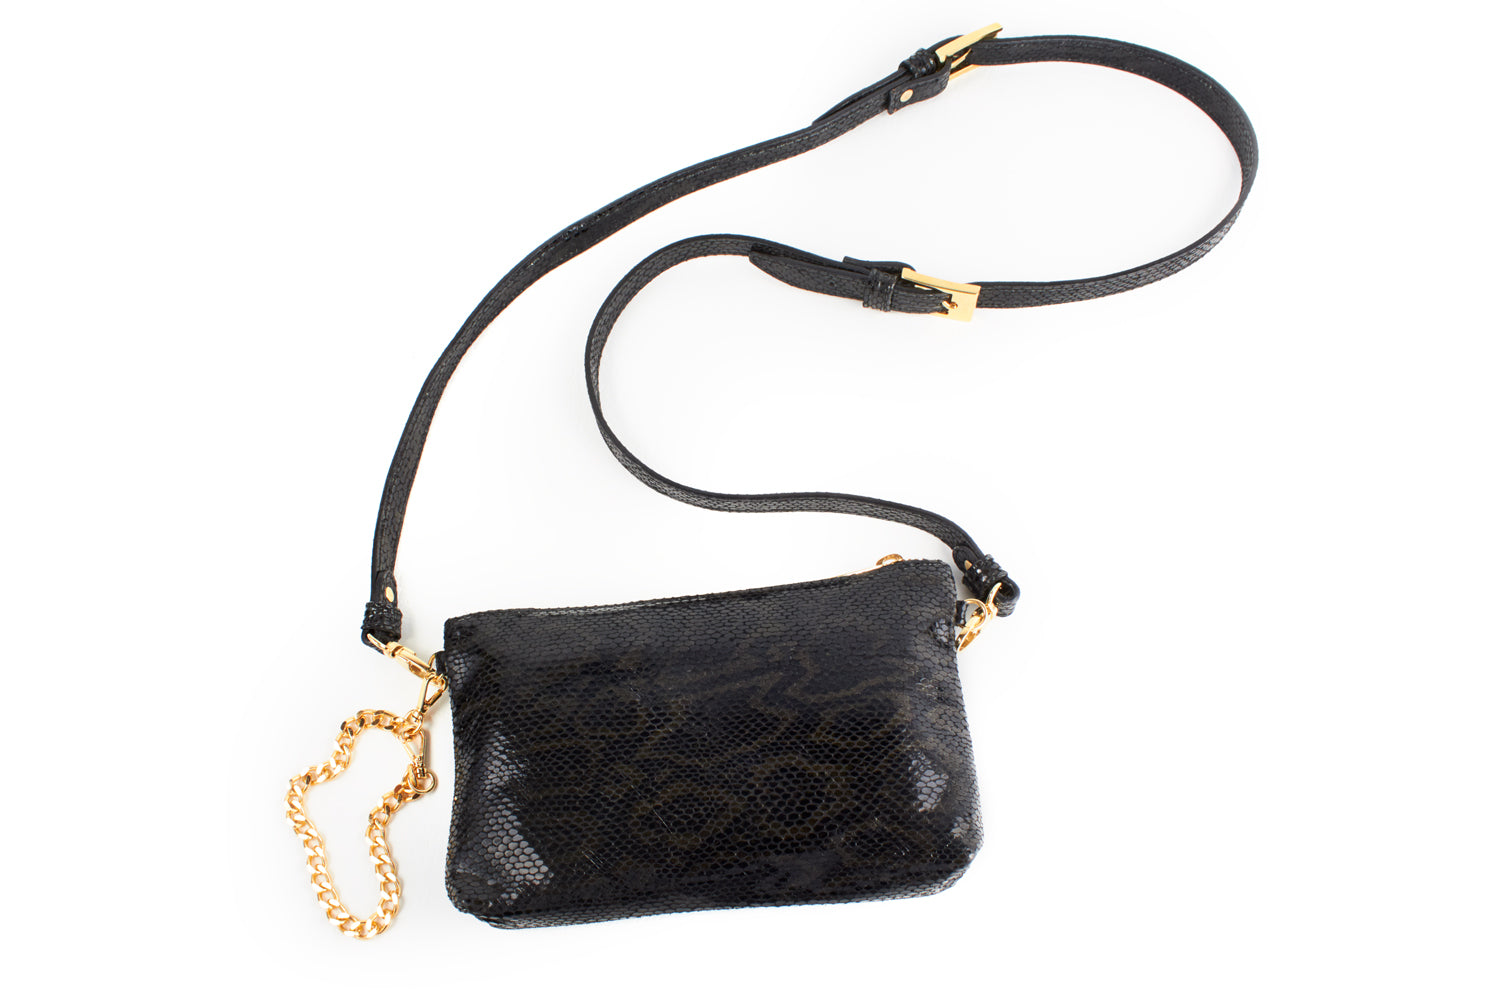 Mel Boteri | Black, Metallic Snake-Effect Leather 'Kat' Pouch | Cross-Body Style